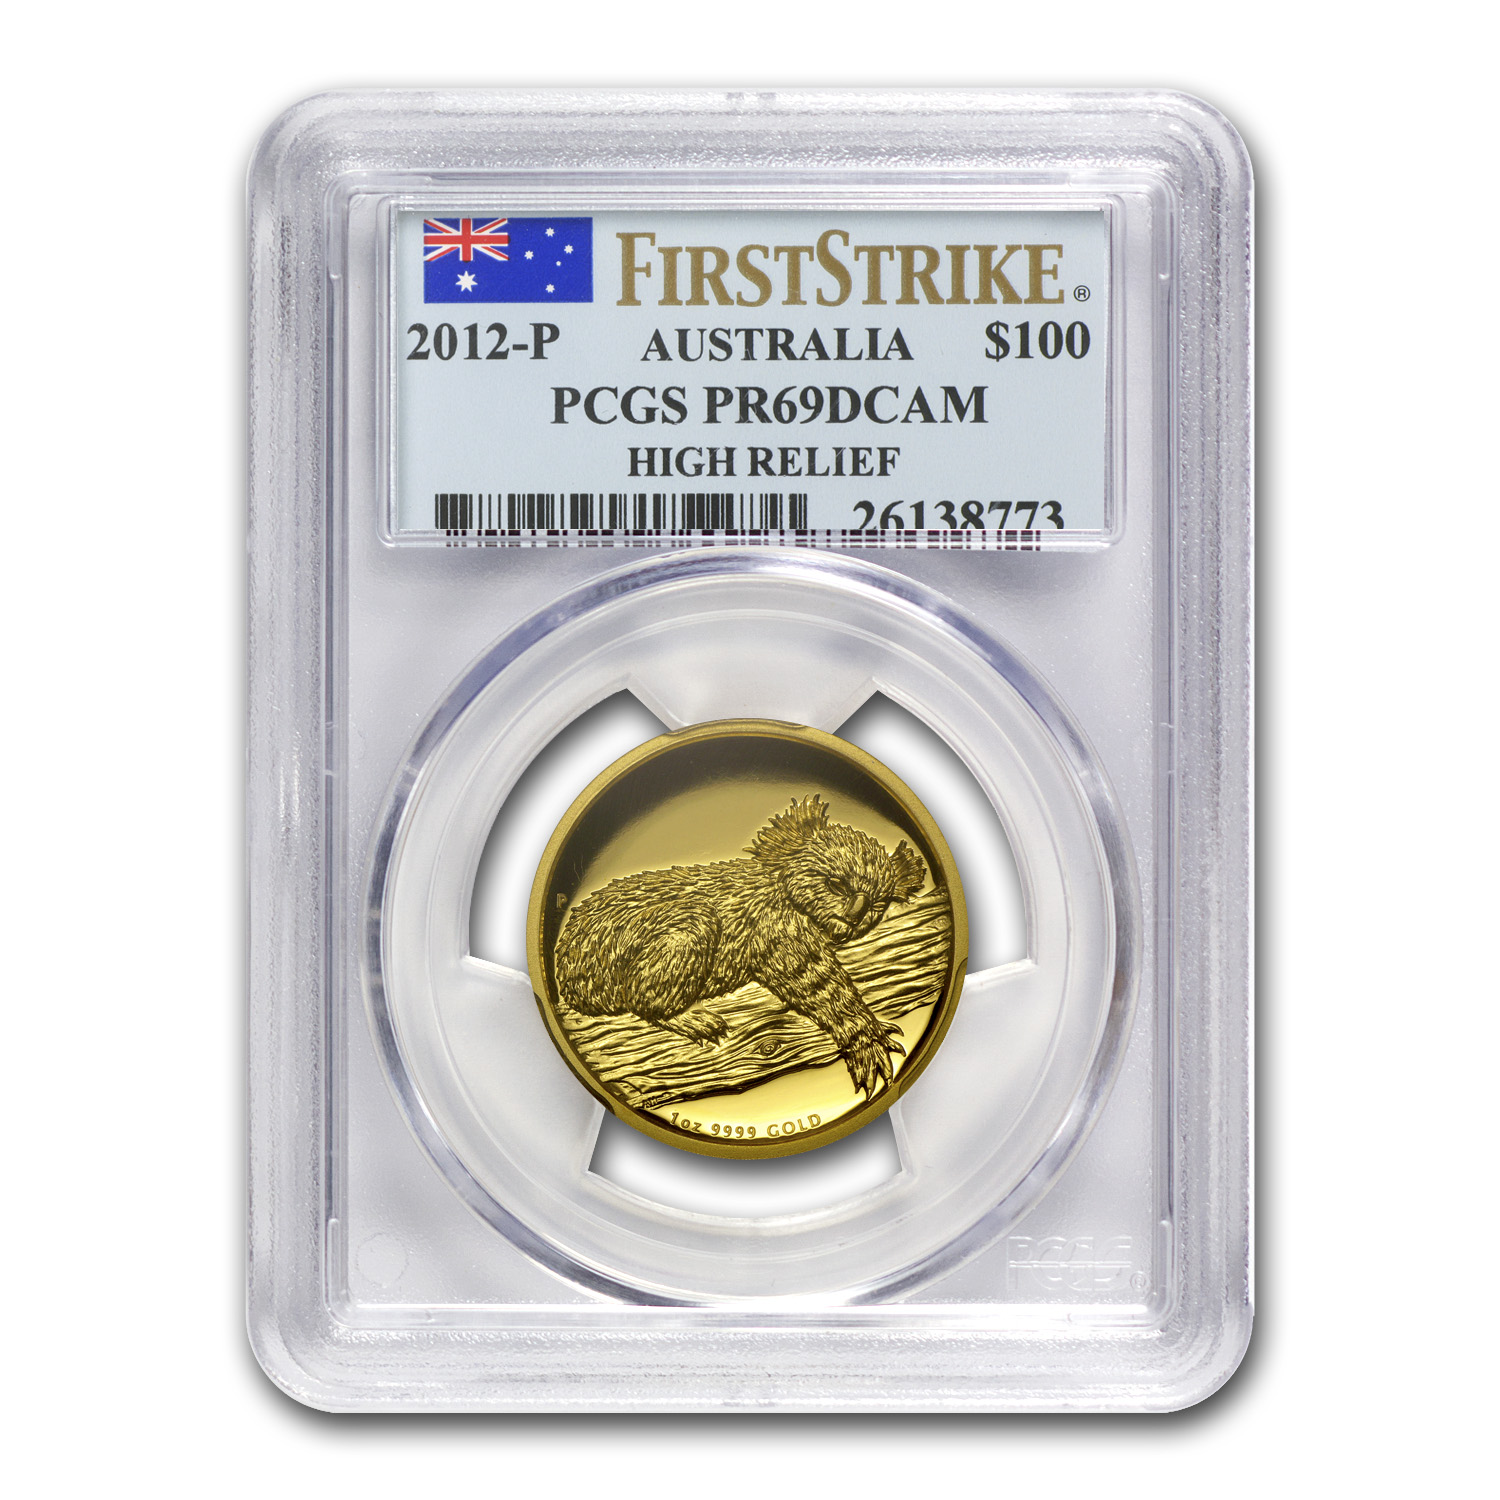 2012-P 1 oz Proof Gold High Relief Koala PR-69 PCGS First Strike